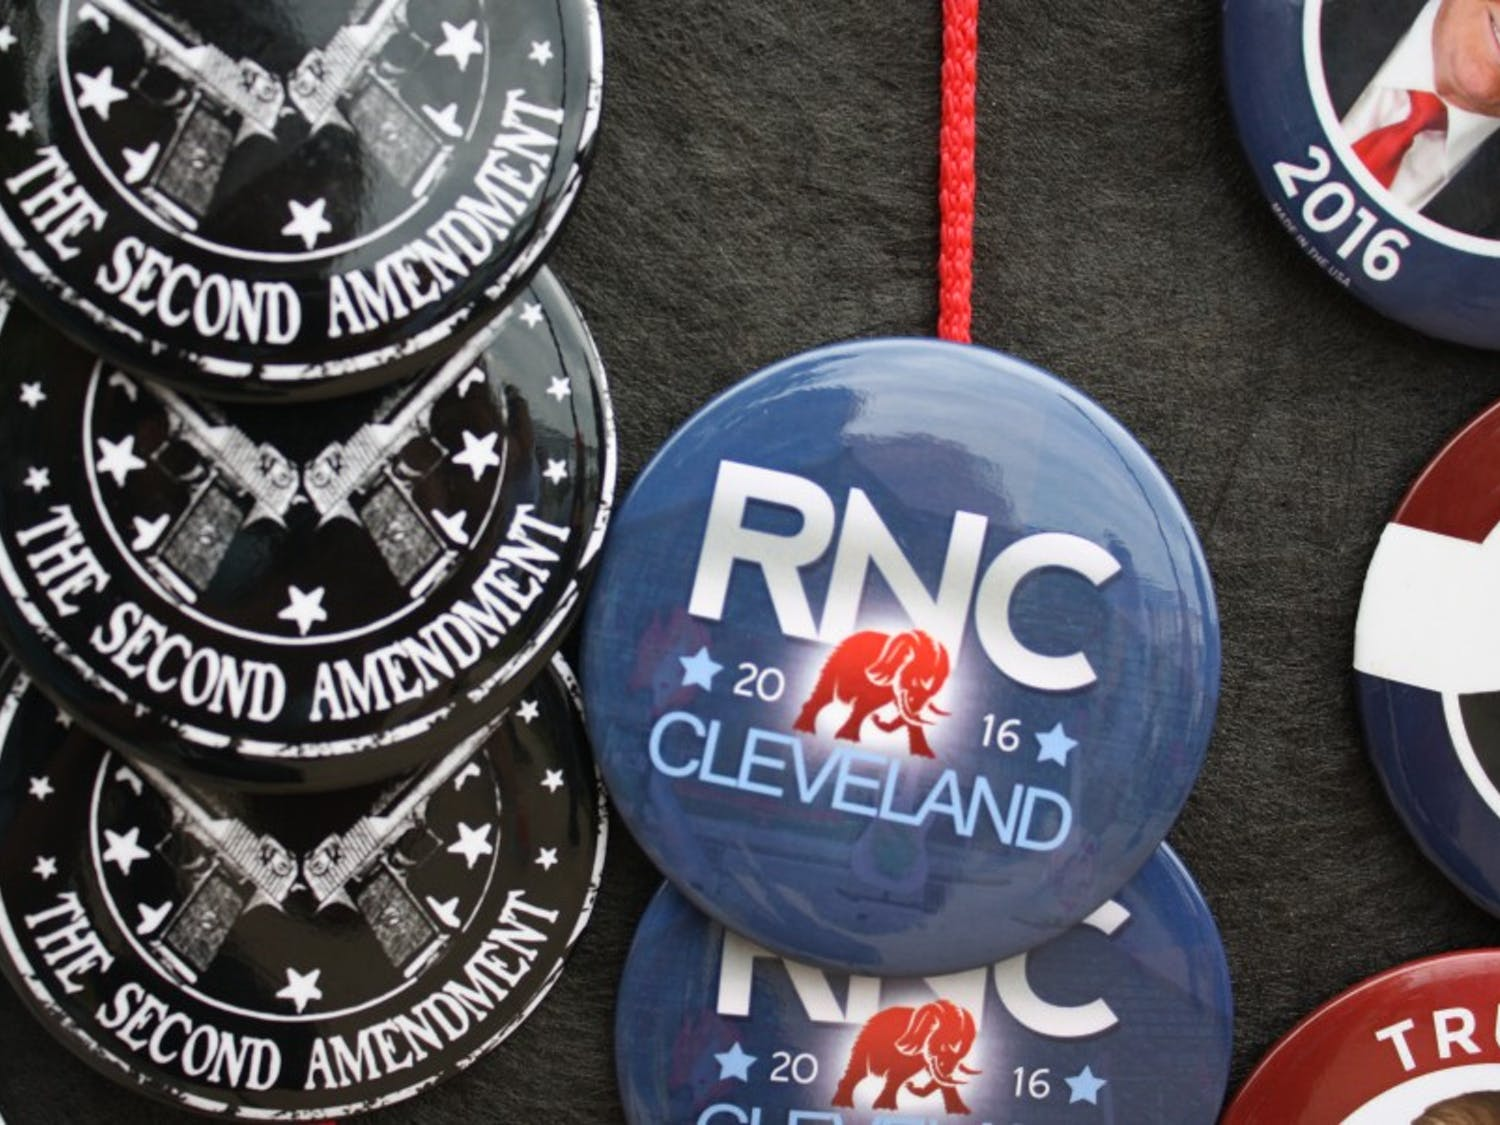 A vendor sells buttons outside the Republican National Convention.